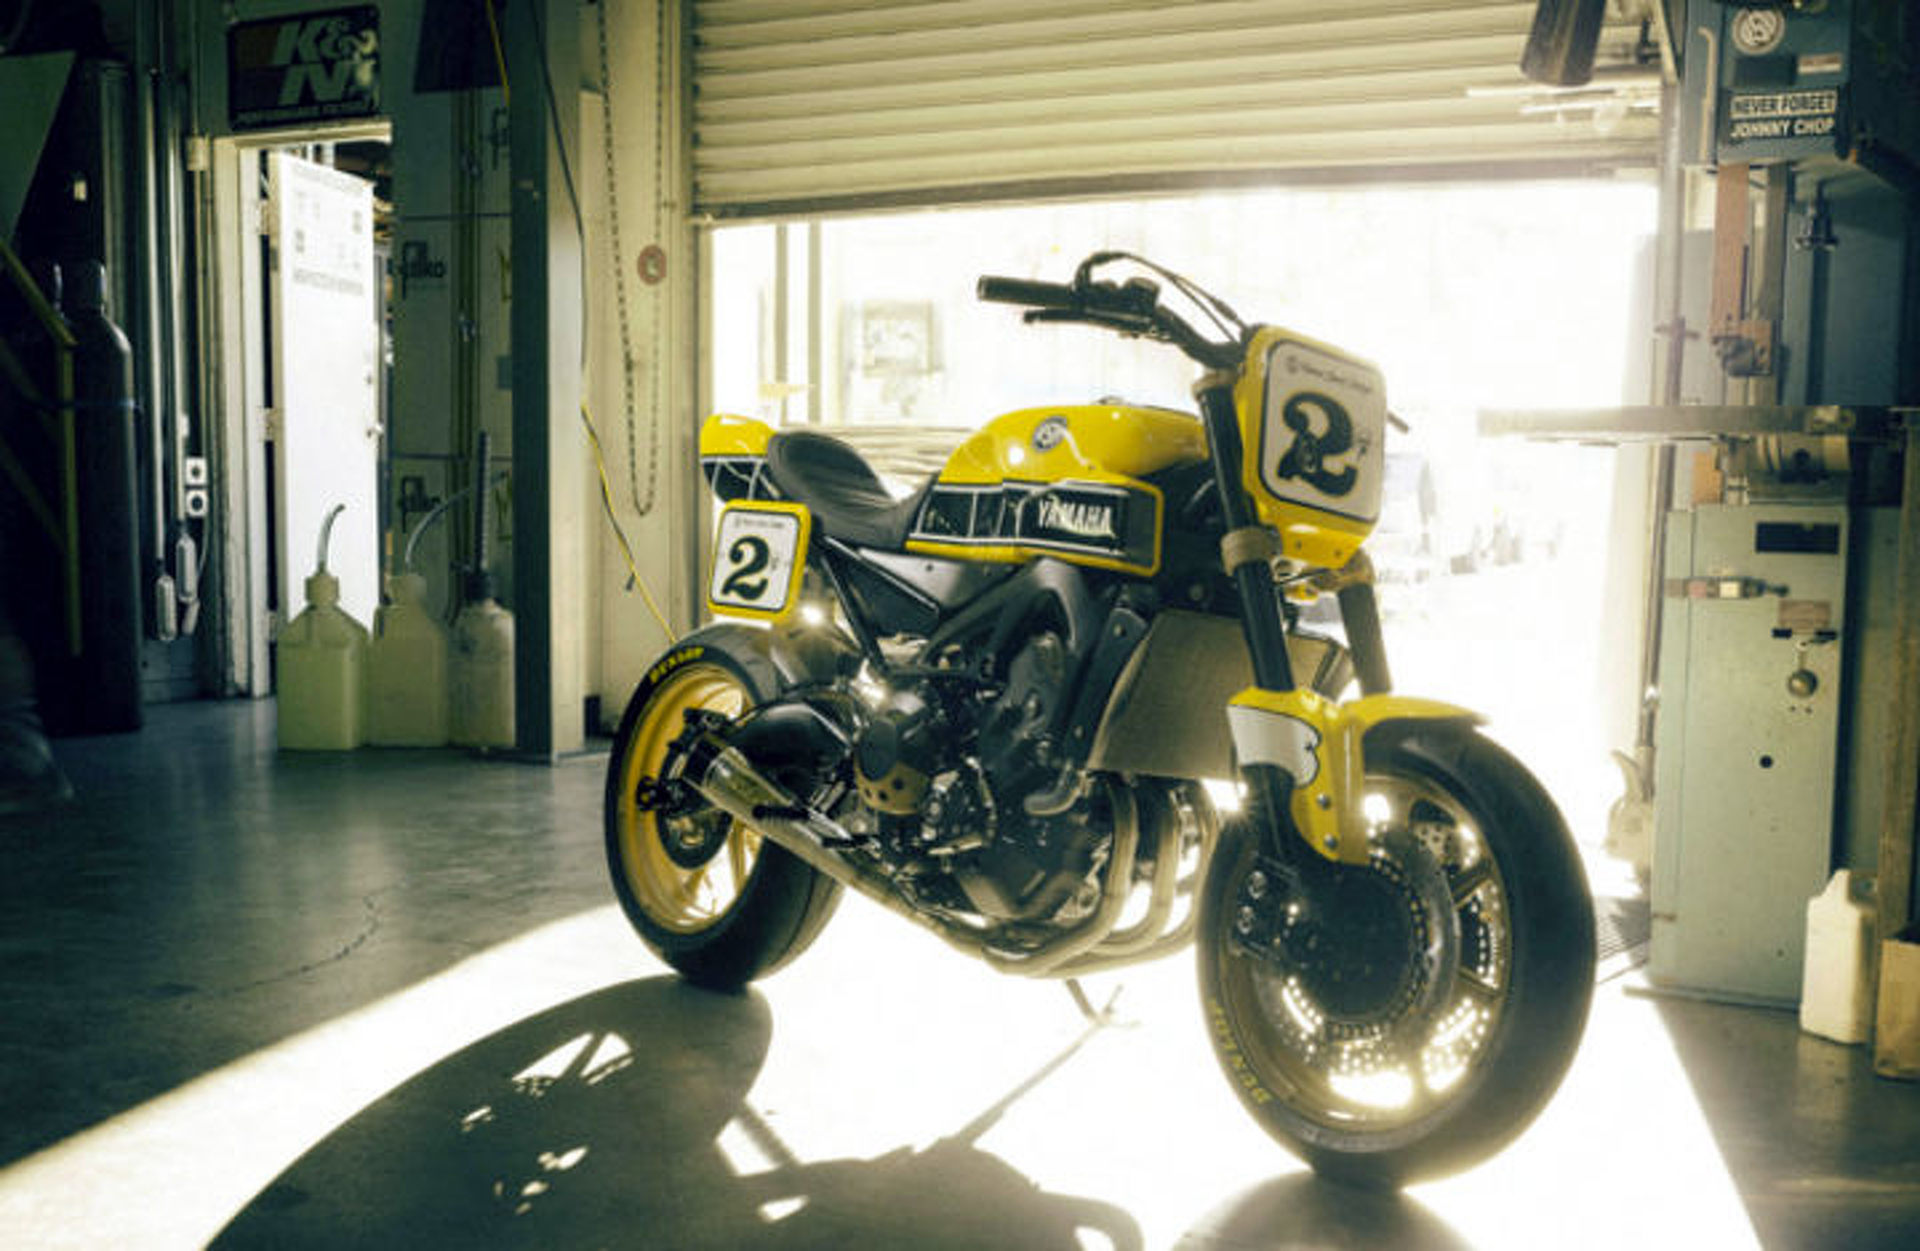 Yamaha and Roland Sands Team up to Build the Faster Wasp